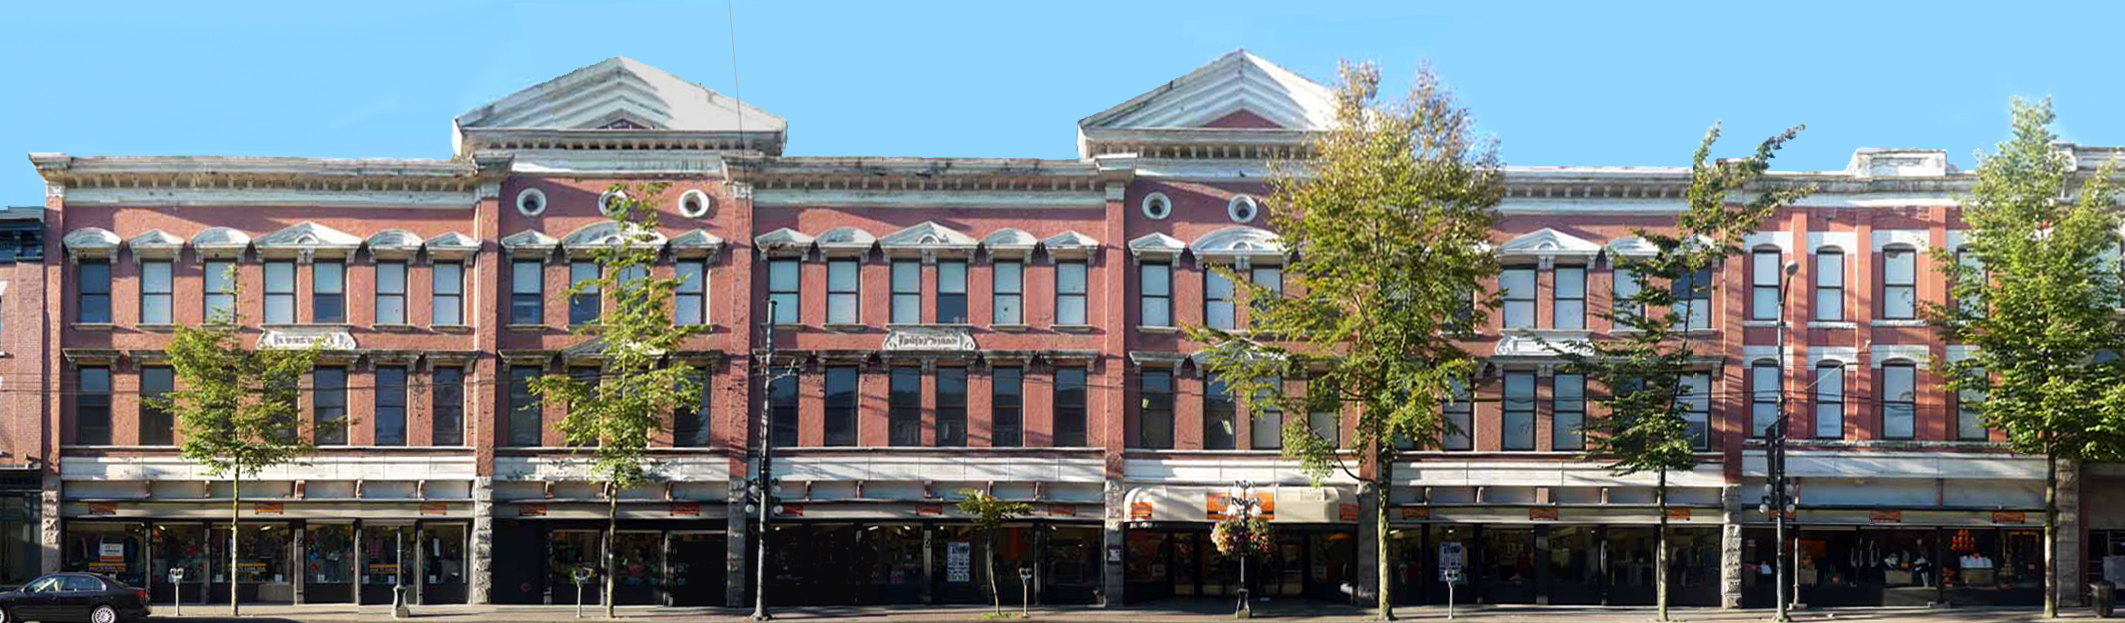 army-and-navy-cordova-street-gastown-shopping